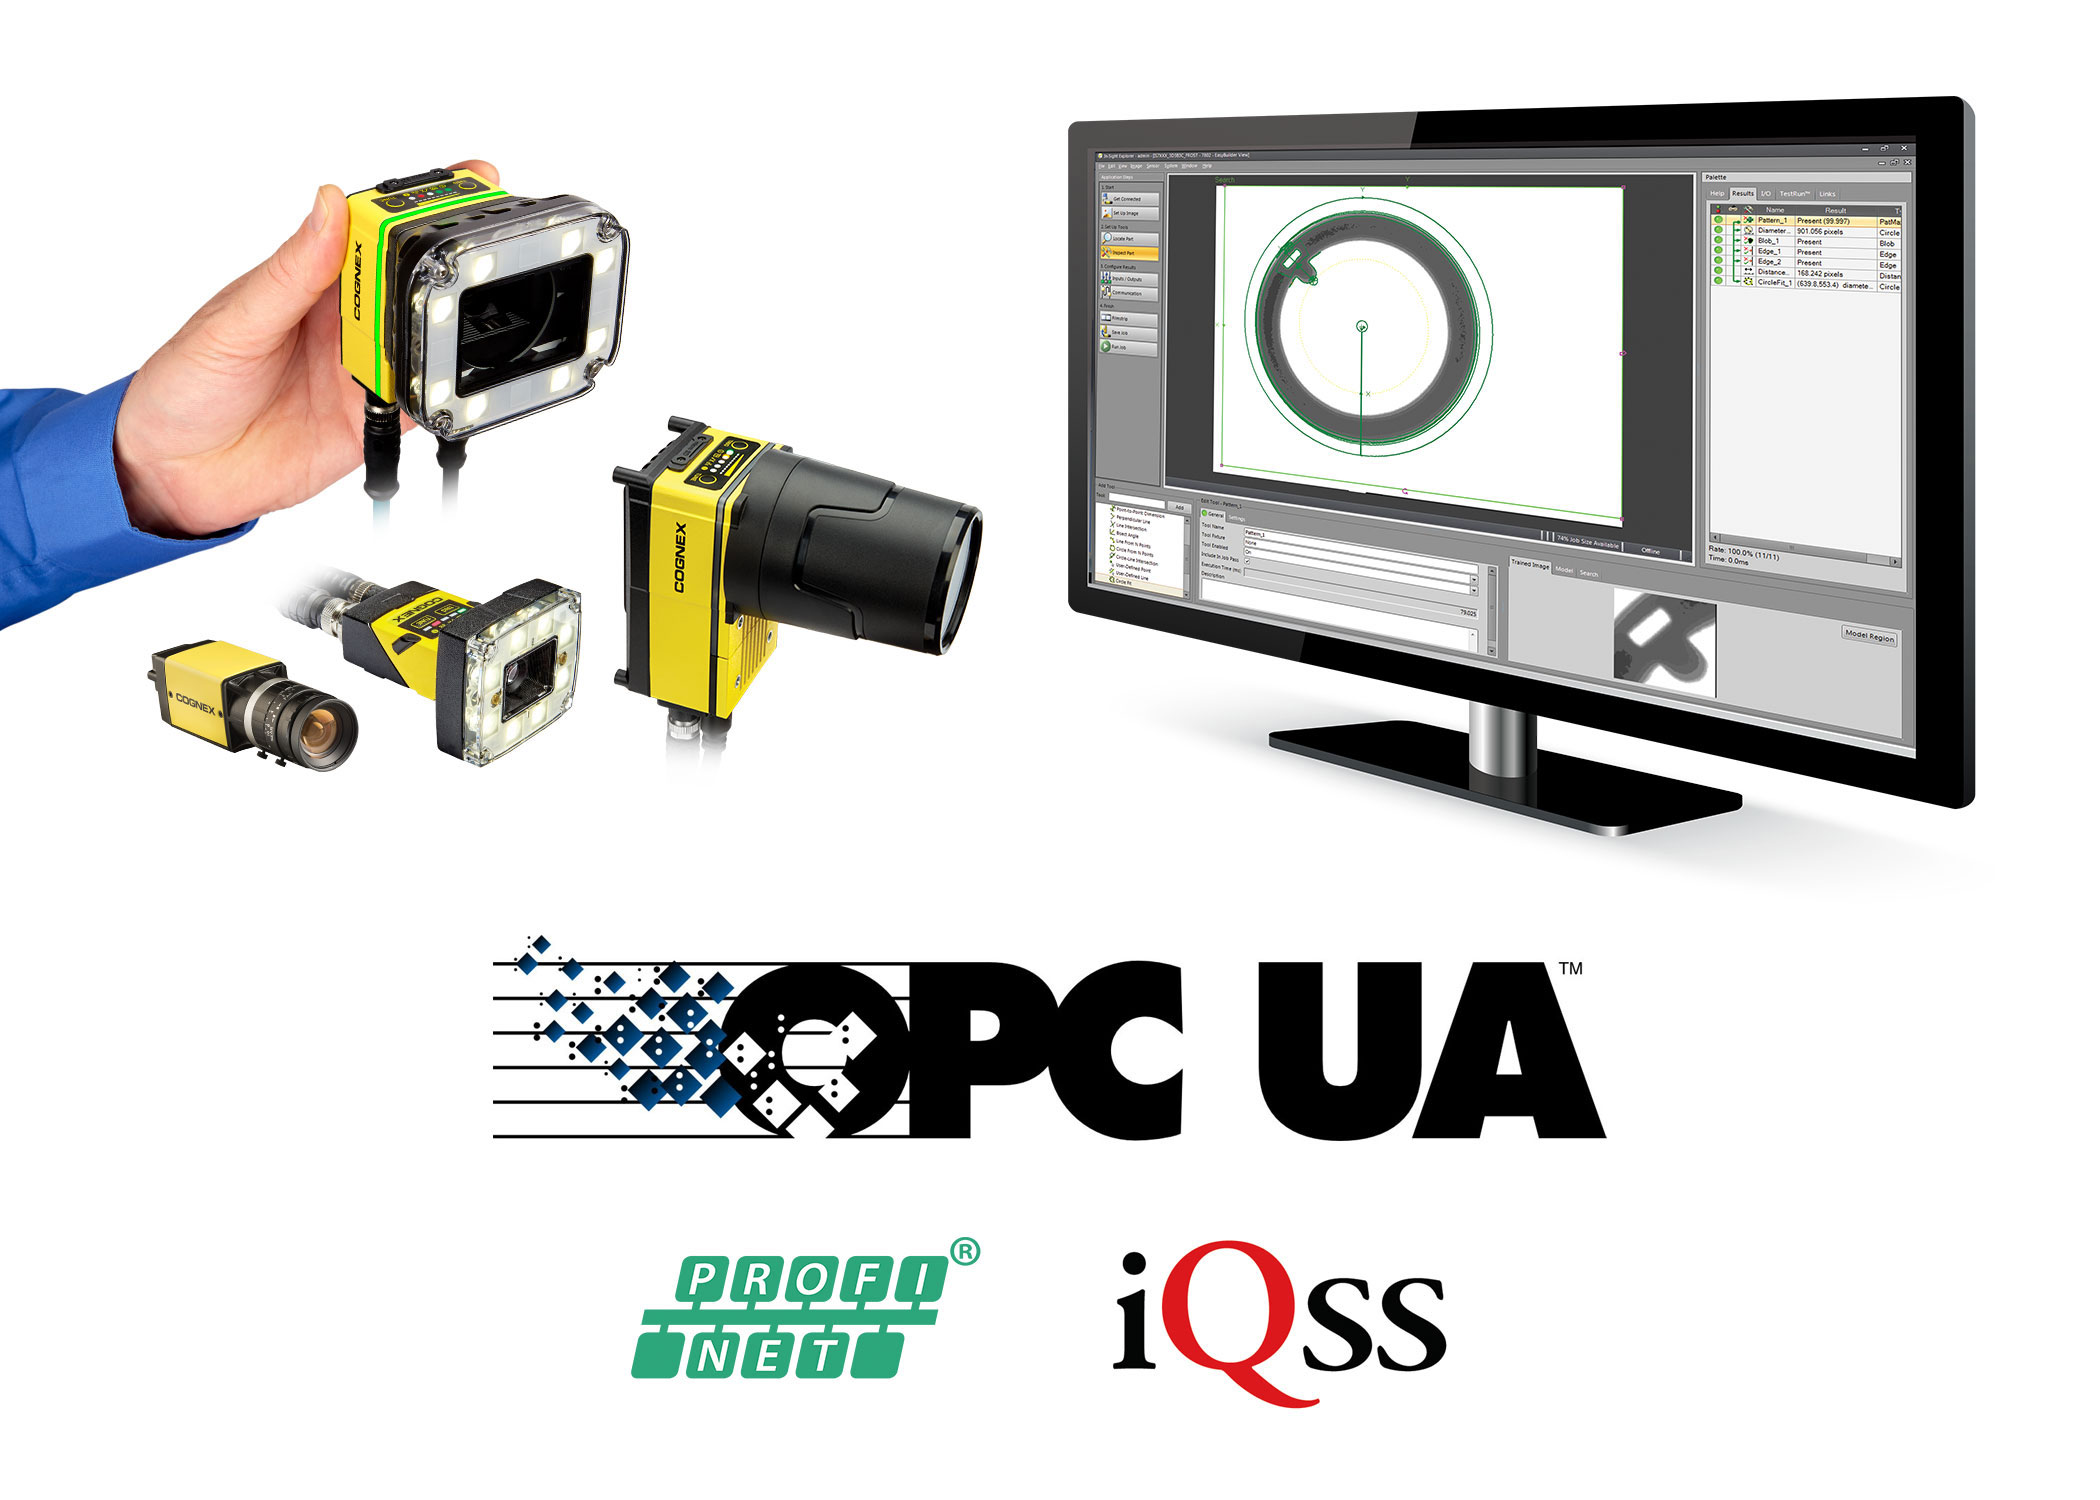 OPC-UA PROFINET iQSS cognex vision systems and software on monitor